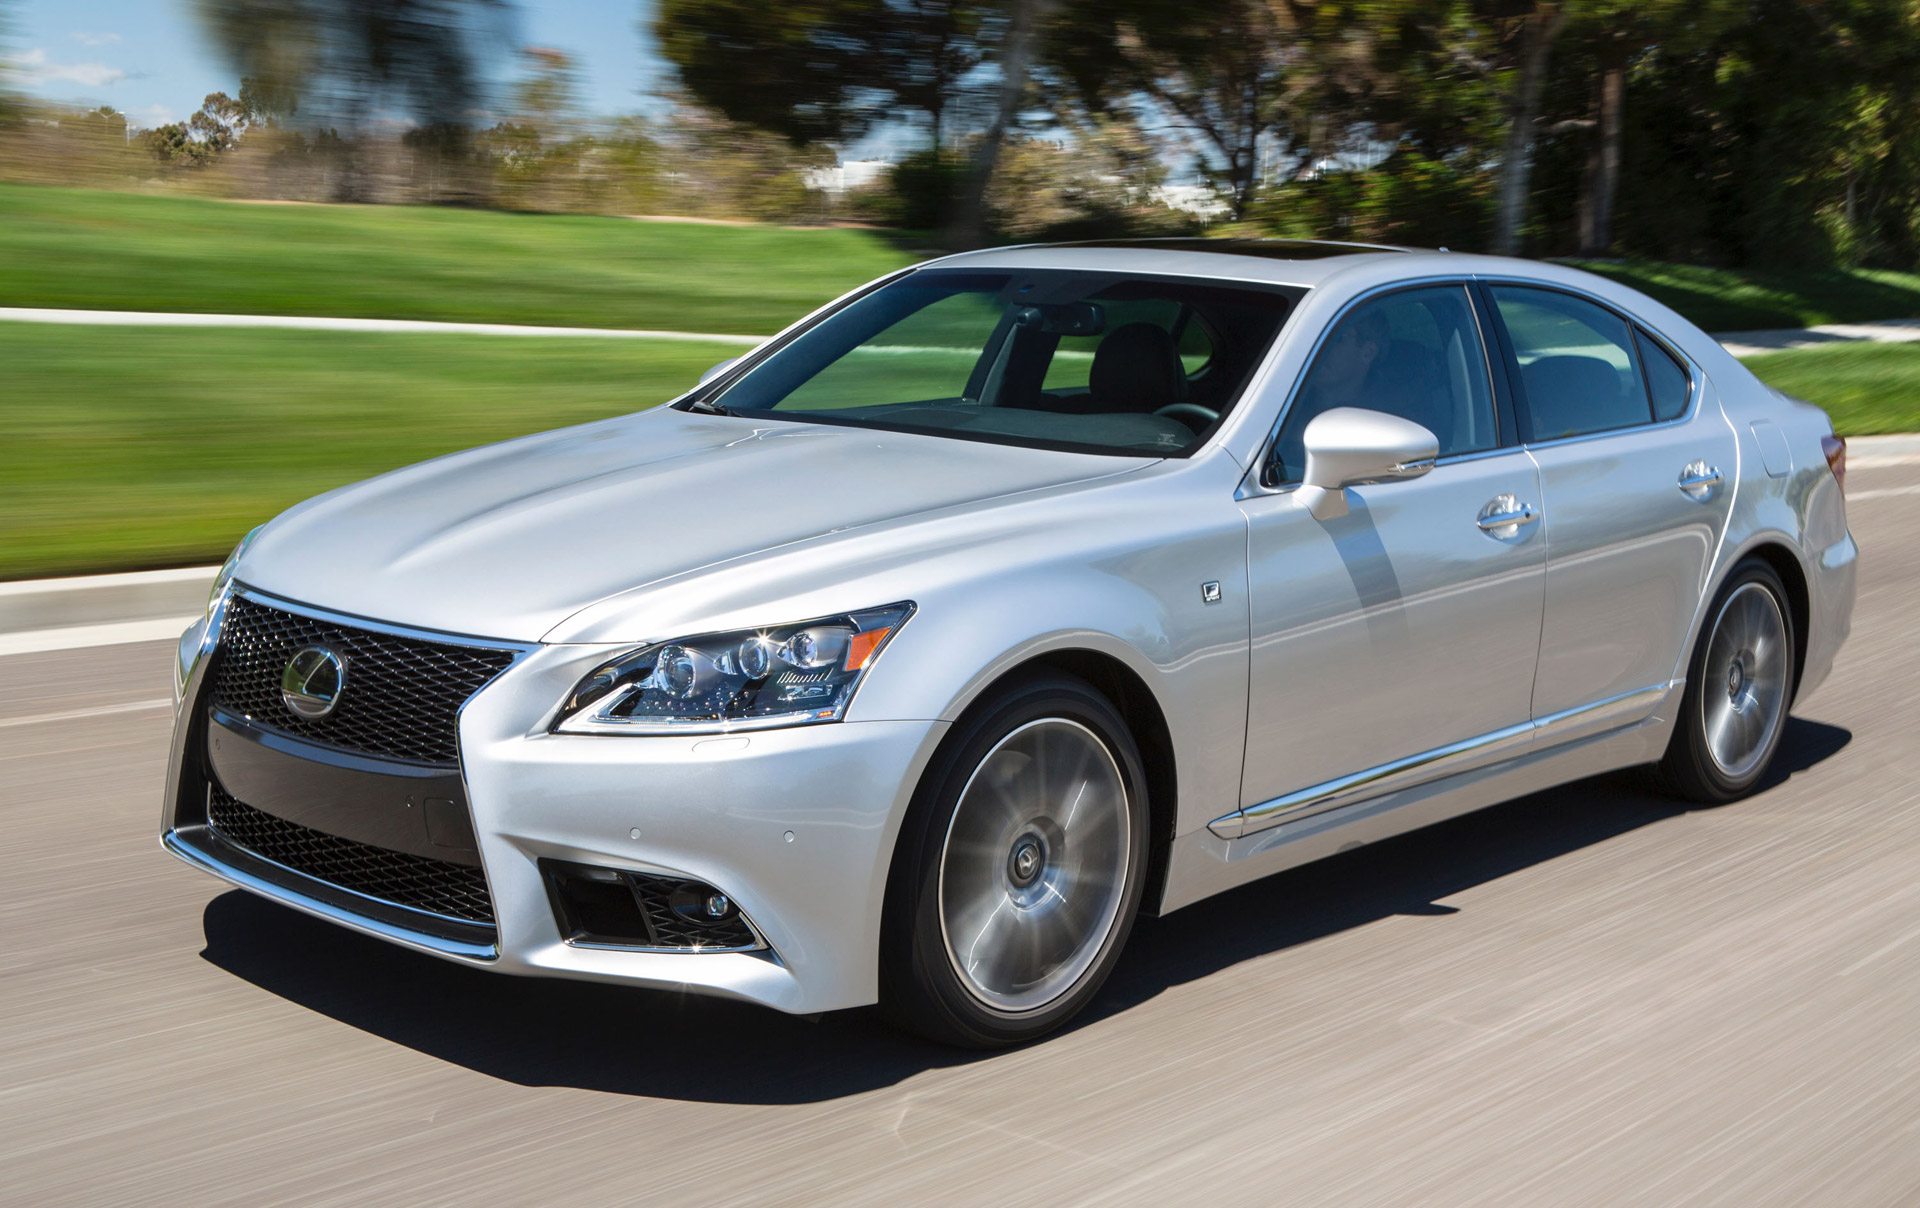 2016 lexus ls gets minor updates ahead of new model s arrival. Black Bedroom Furniture Sets. Home Design Ideas